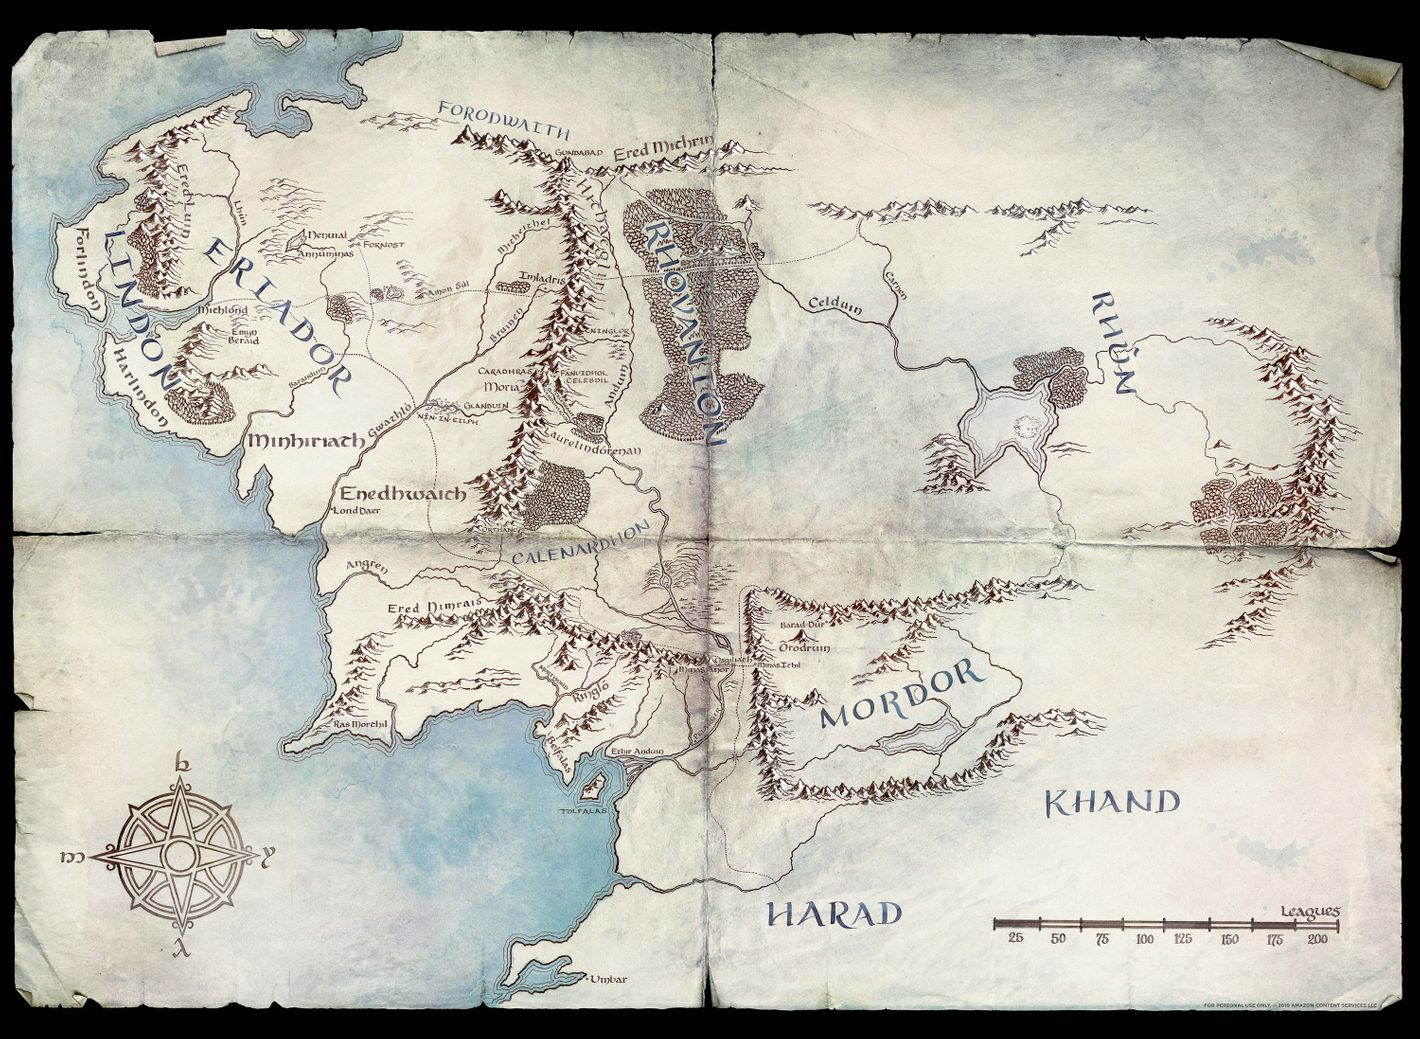 Amazon's Lord of the Rings Series: What Is the Second Age? on his dark materials map, doctor who map, minecraft middle earth map, thors map, fellowship of the ring map, watership down map, angband map, supernatural map, j. r. r. tolkien, marvel map, legend of zelda map, the hobbit, lord of the rings map, frodo baggins, james bond map, to kill a mockingbird map, detailed middle earth map, jak and daxter map, firefly map, the lord of the rings, tolkein map, batman map, legend of dragoon map, the hobbit map,